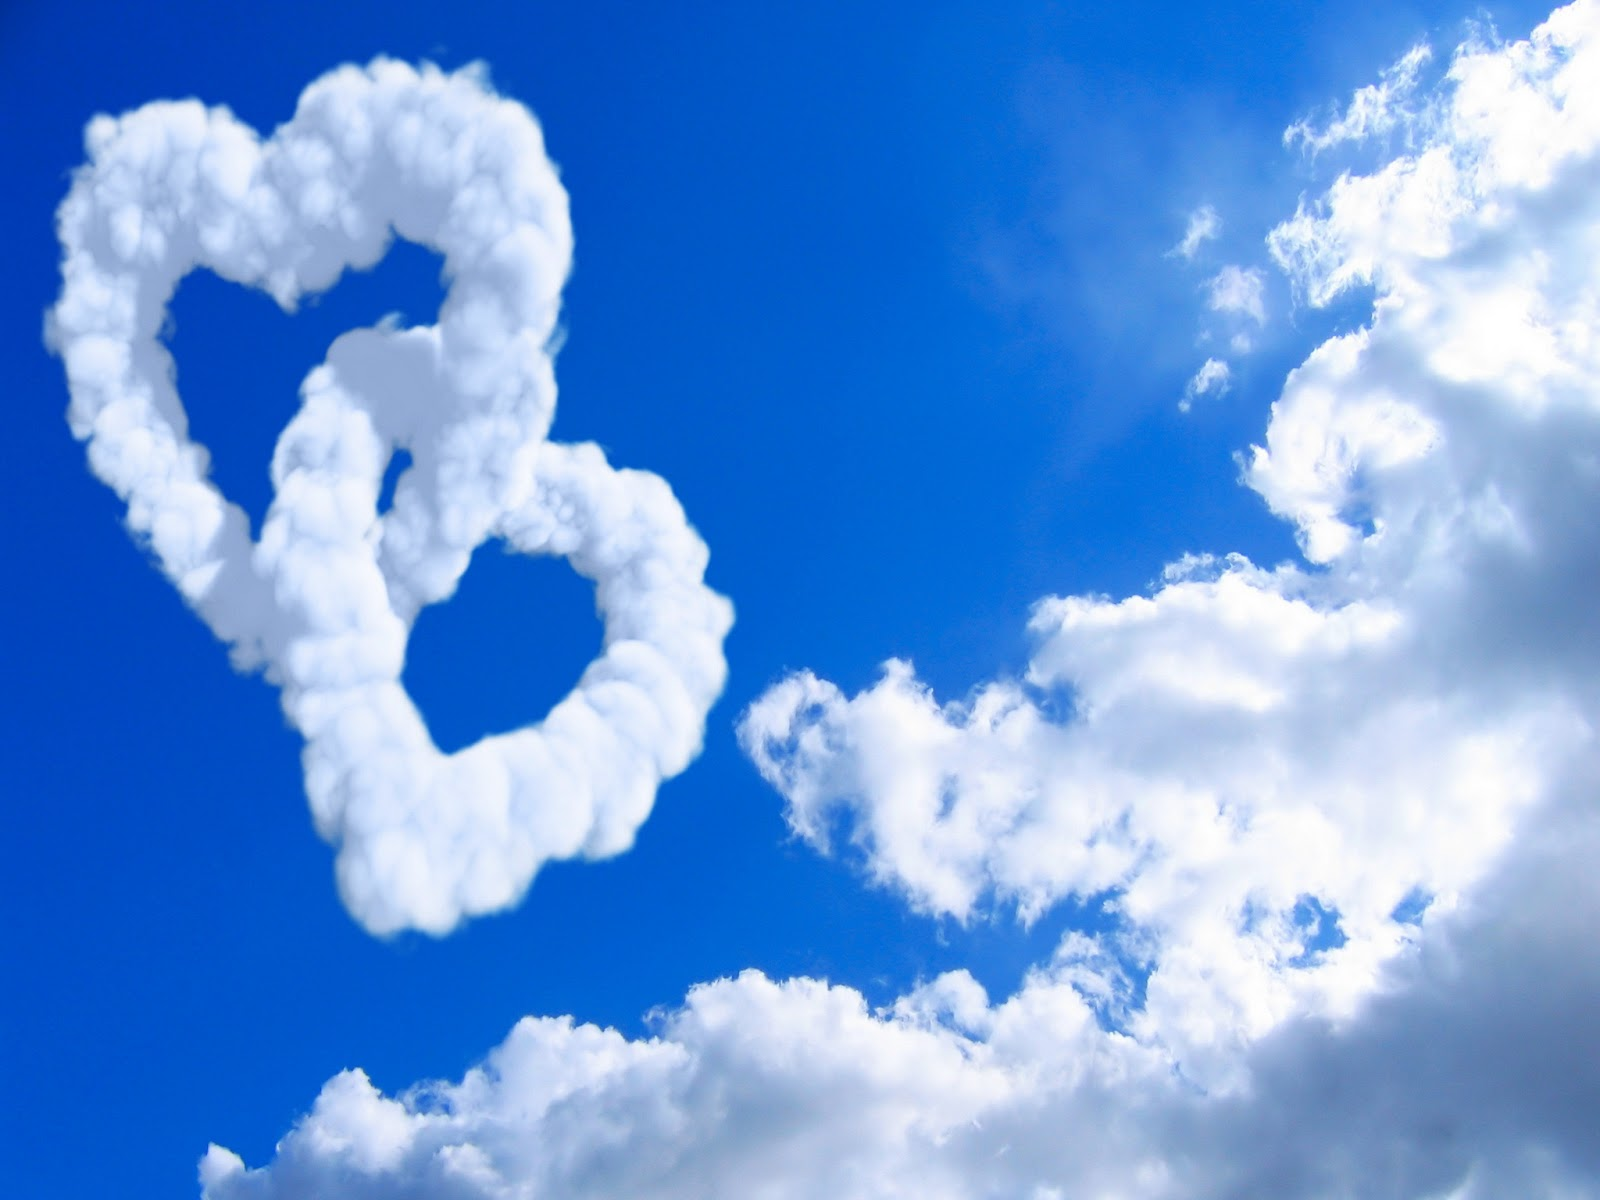 New Love Photos Wallpaper To Wallpapers Free Pics Download